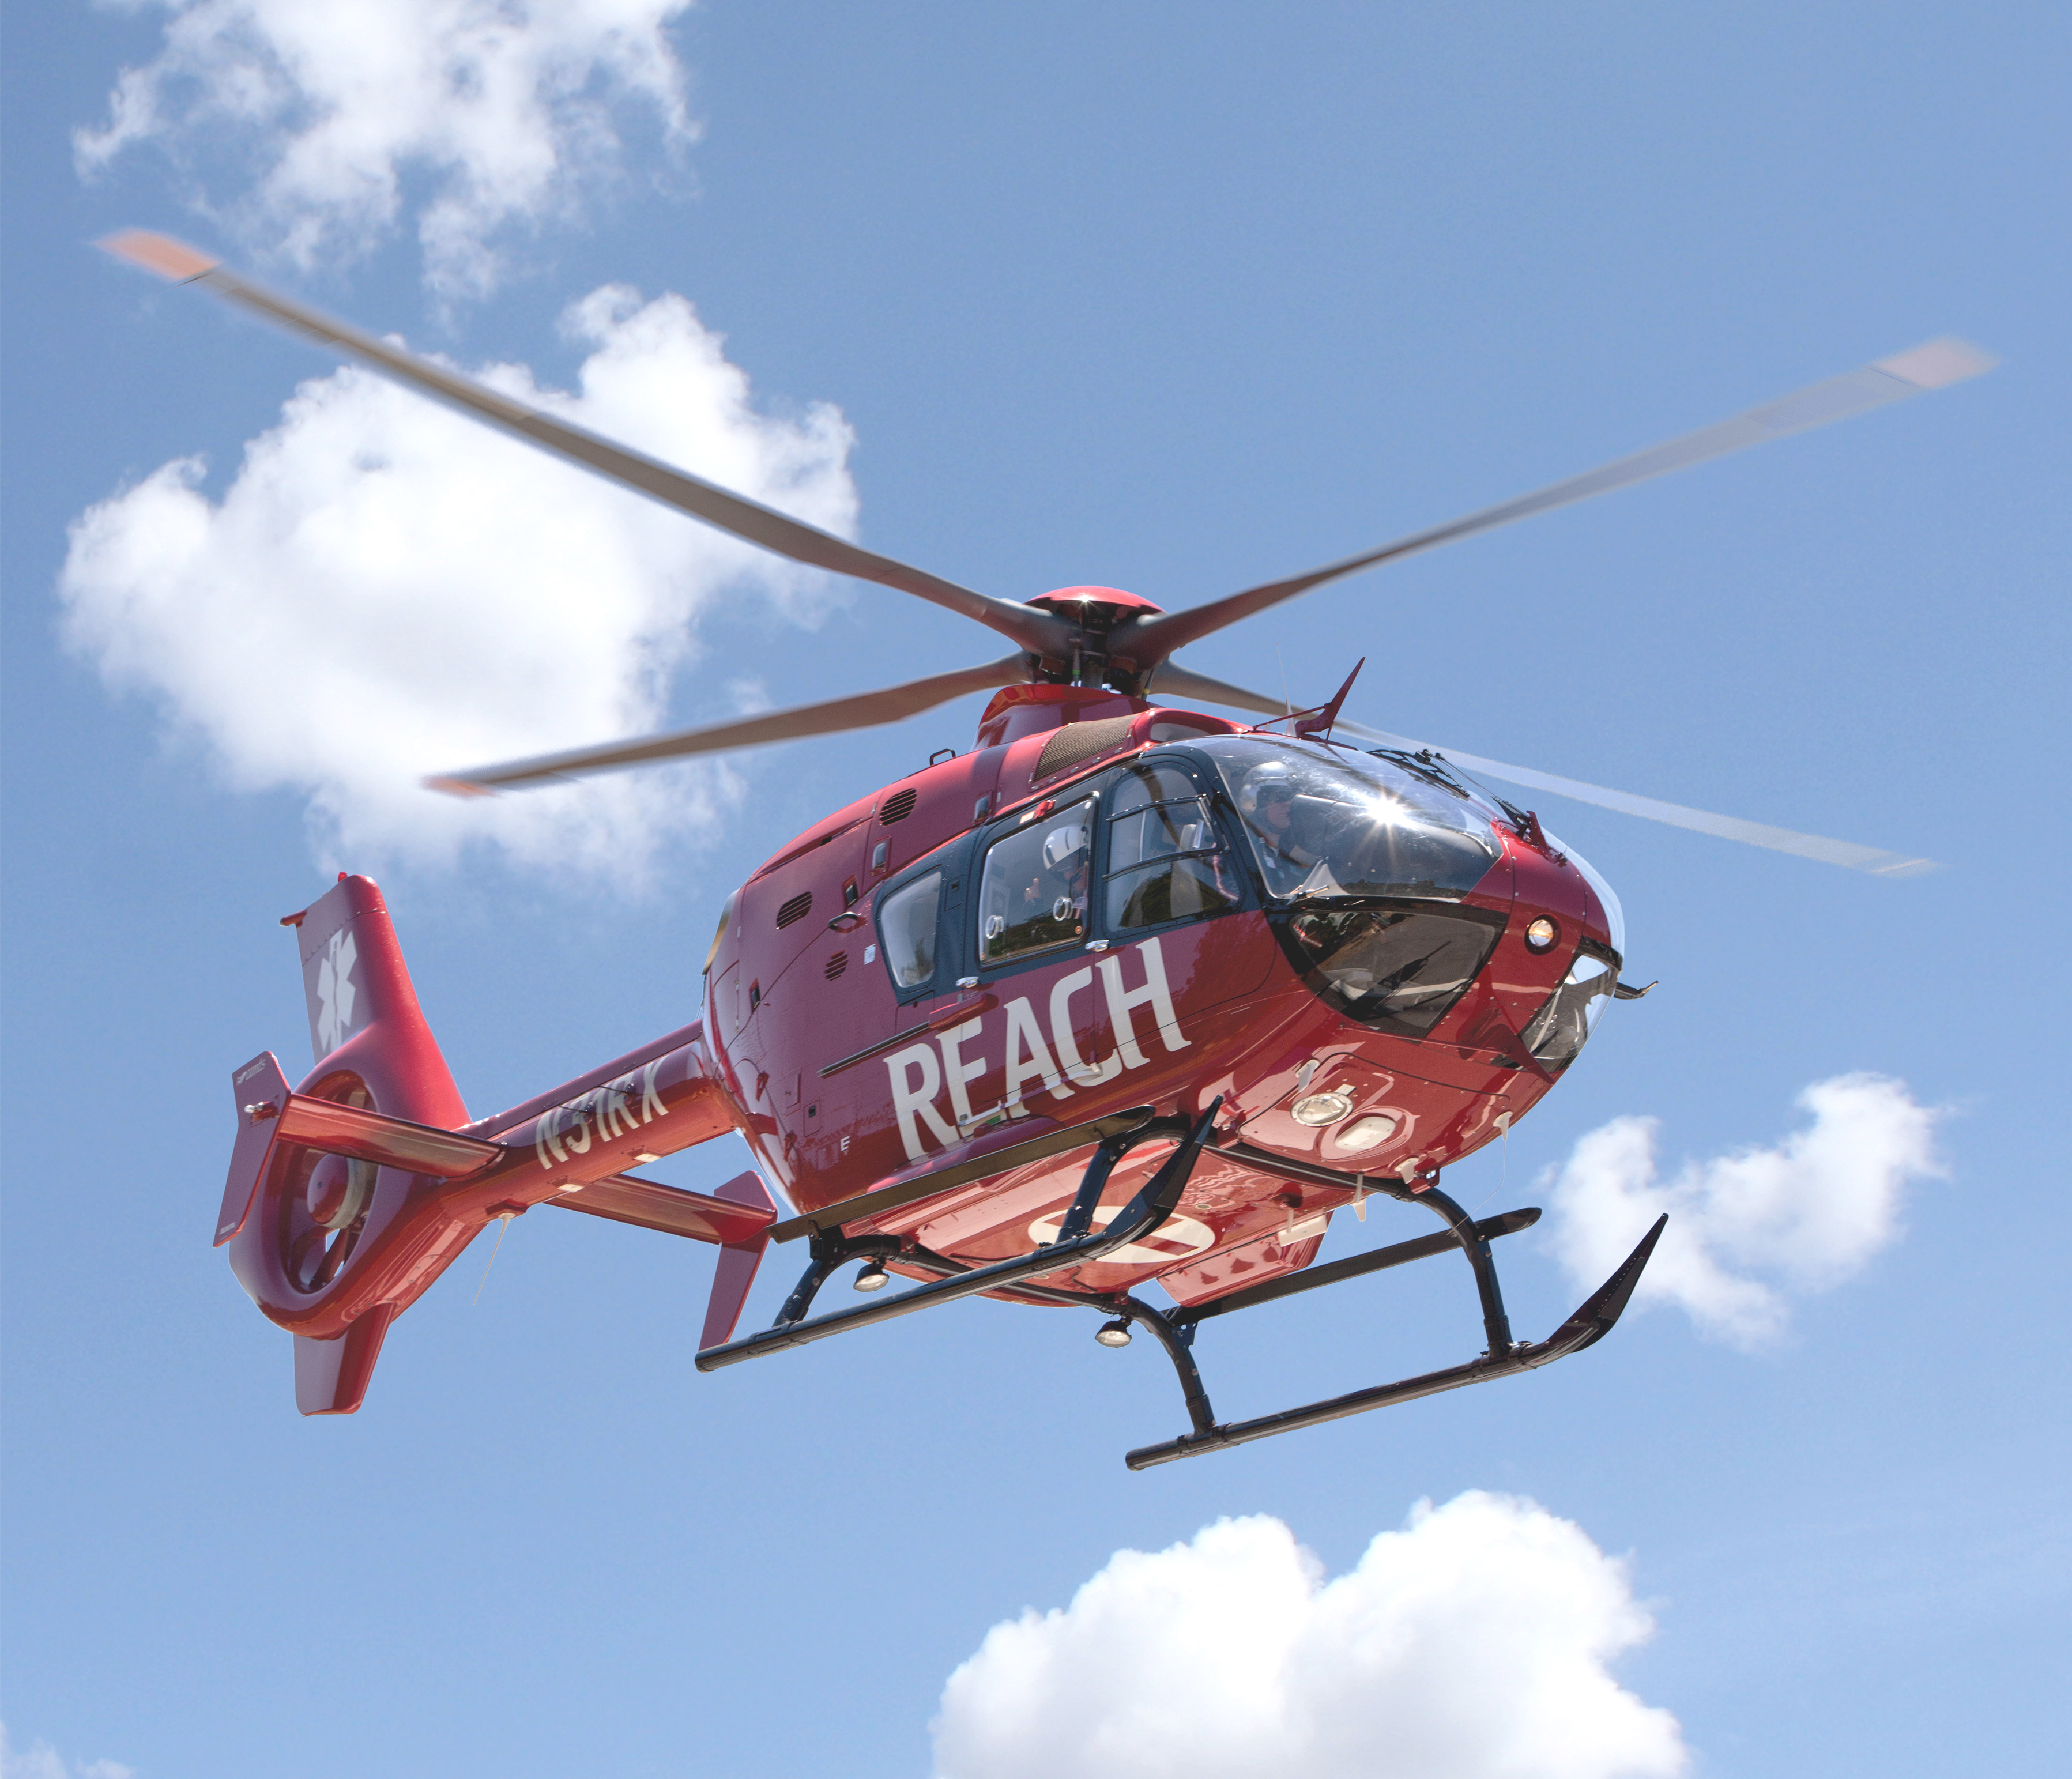 REACH's new EC135 helicopter serves customers in Northern California